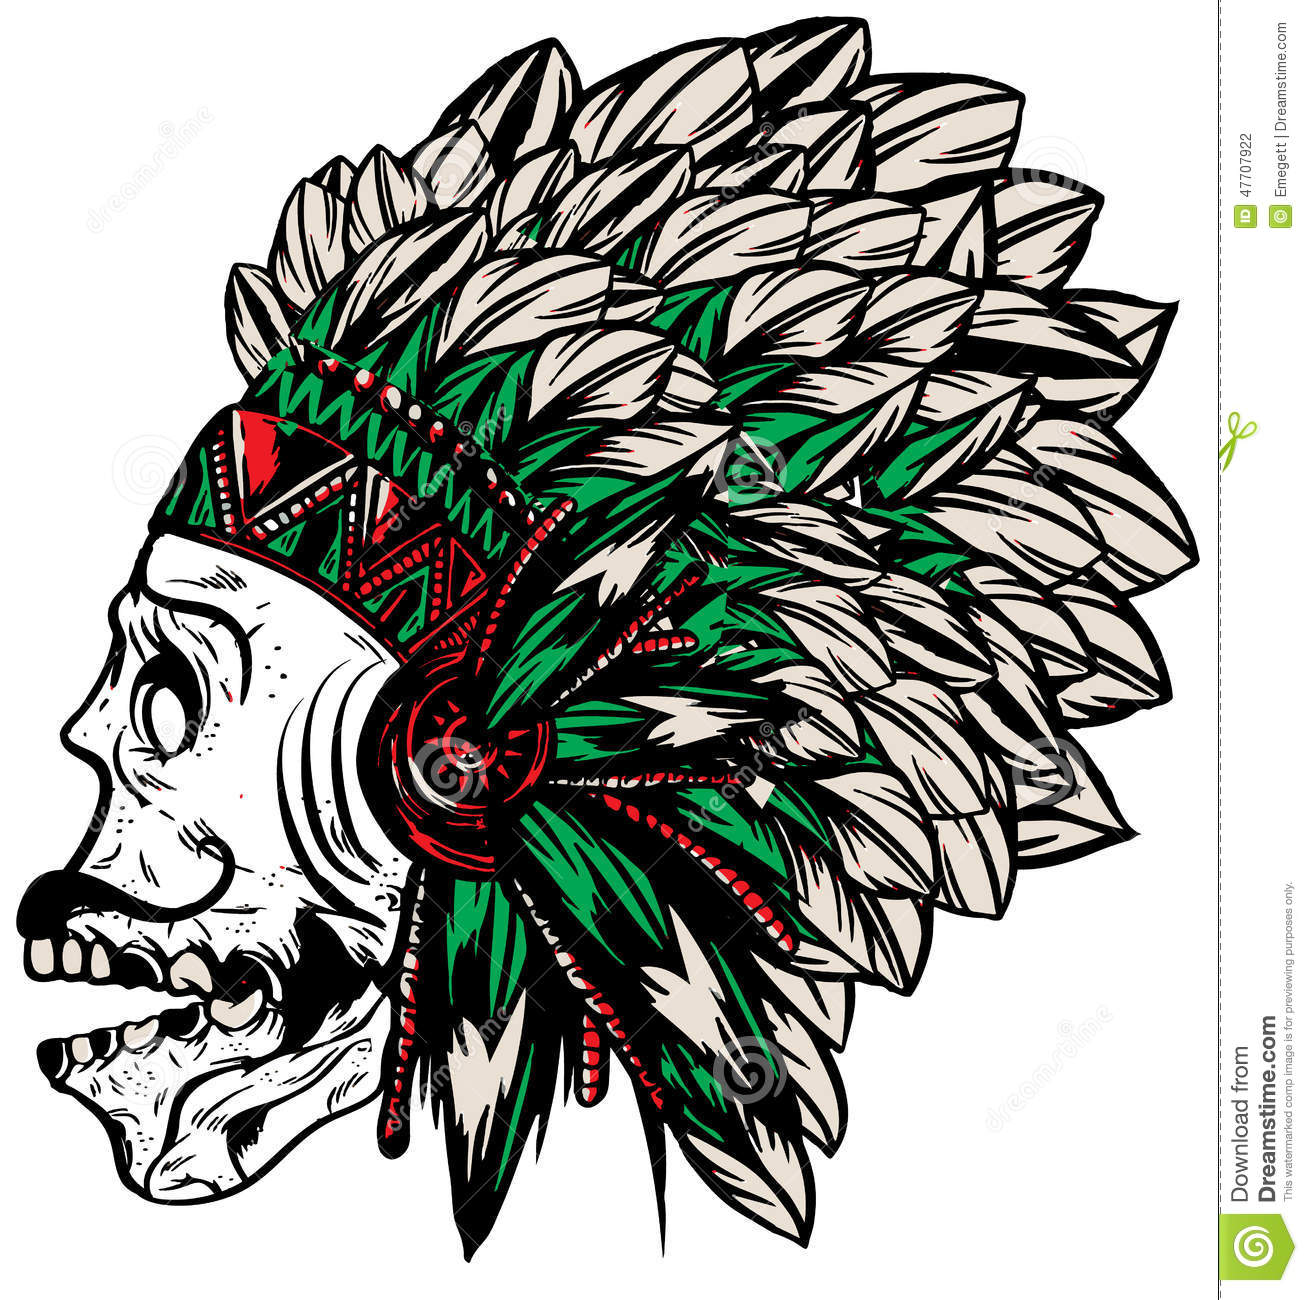 hight resolution of native american indian chief headdress t shirt graphics